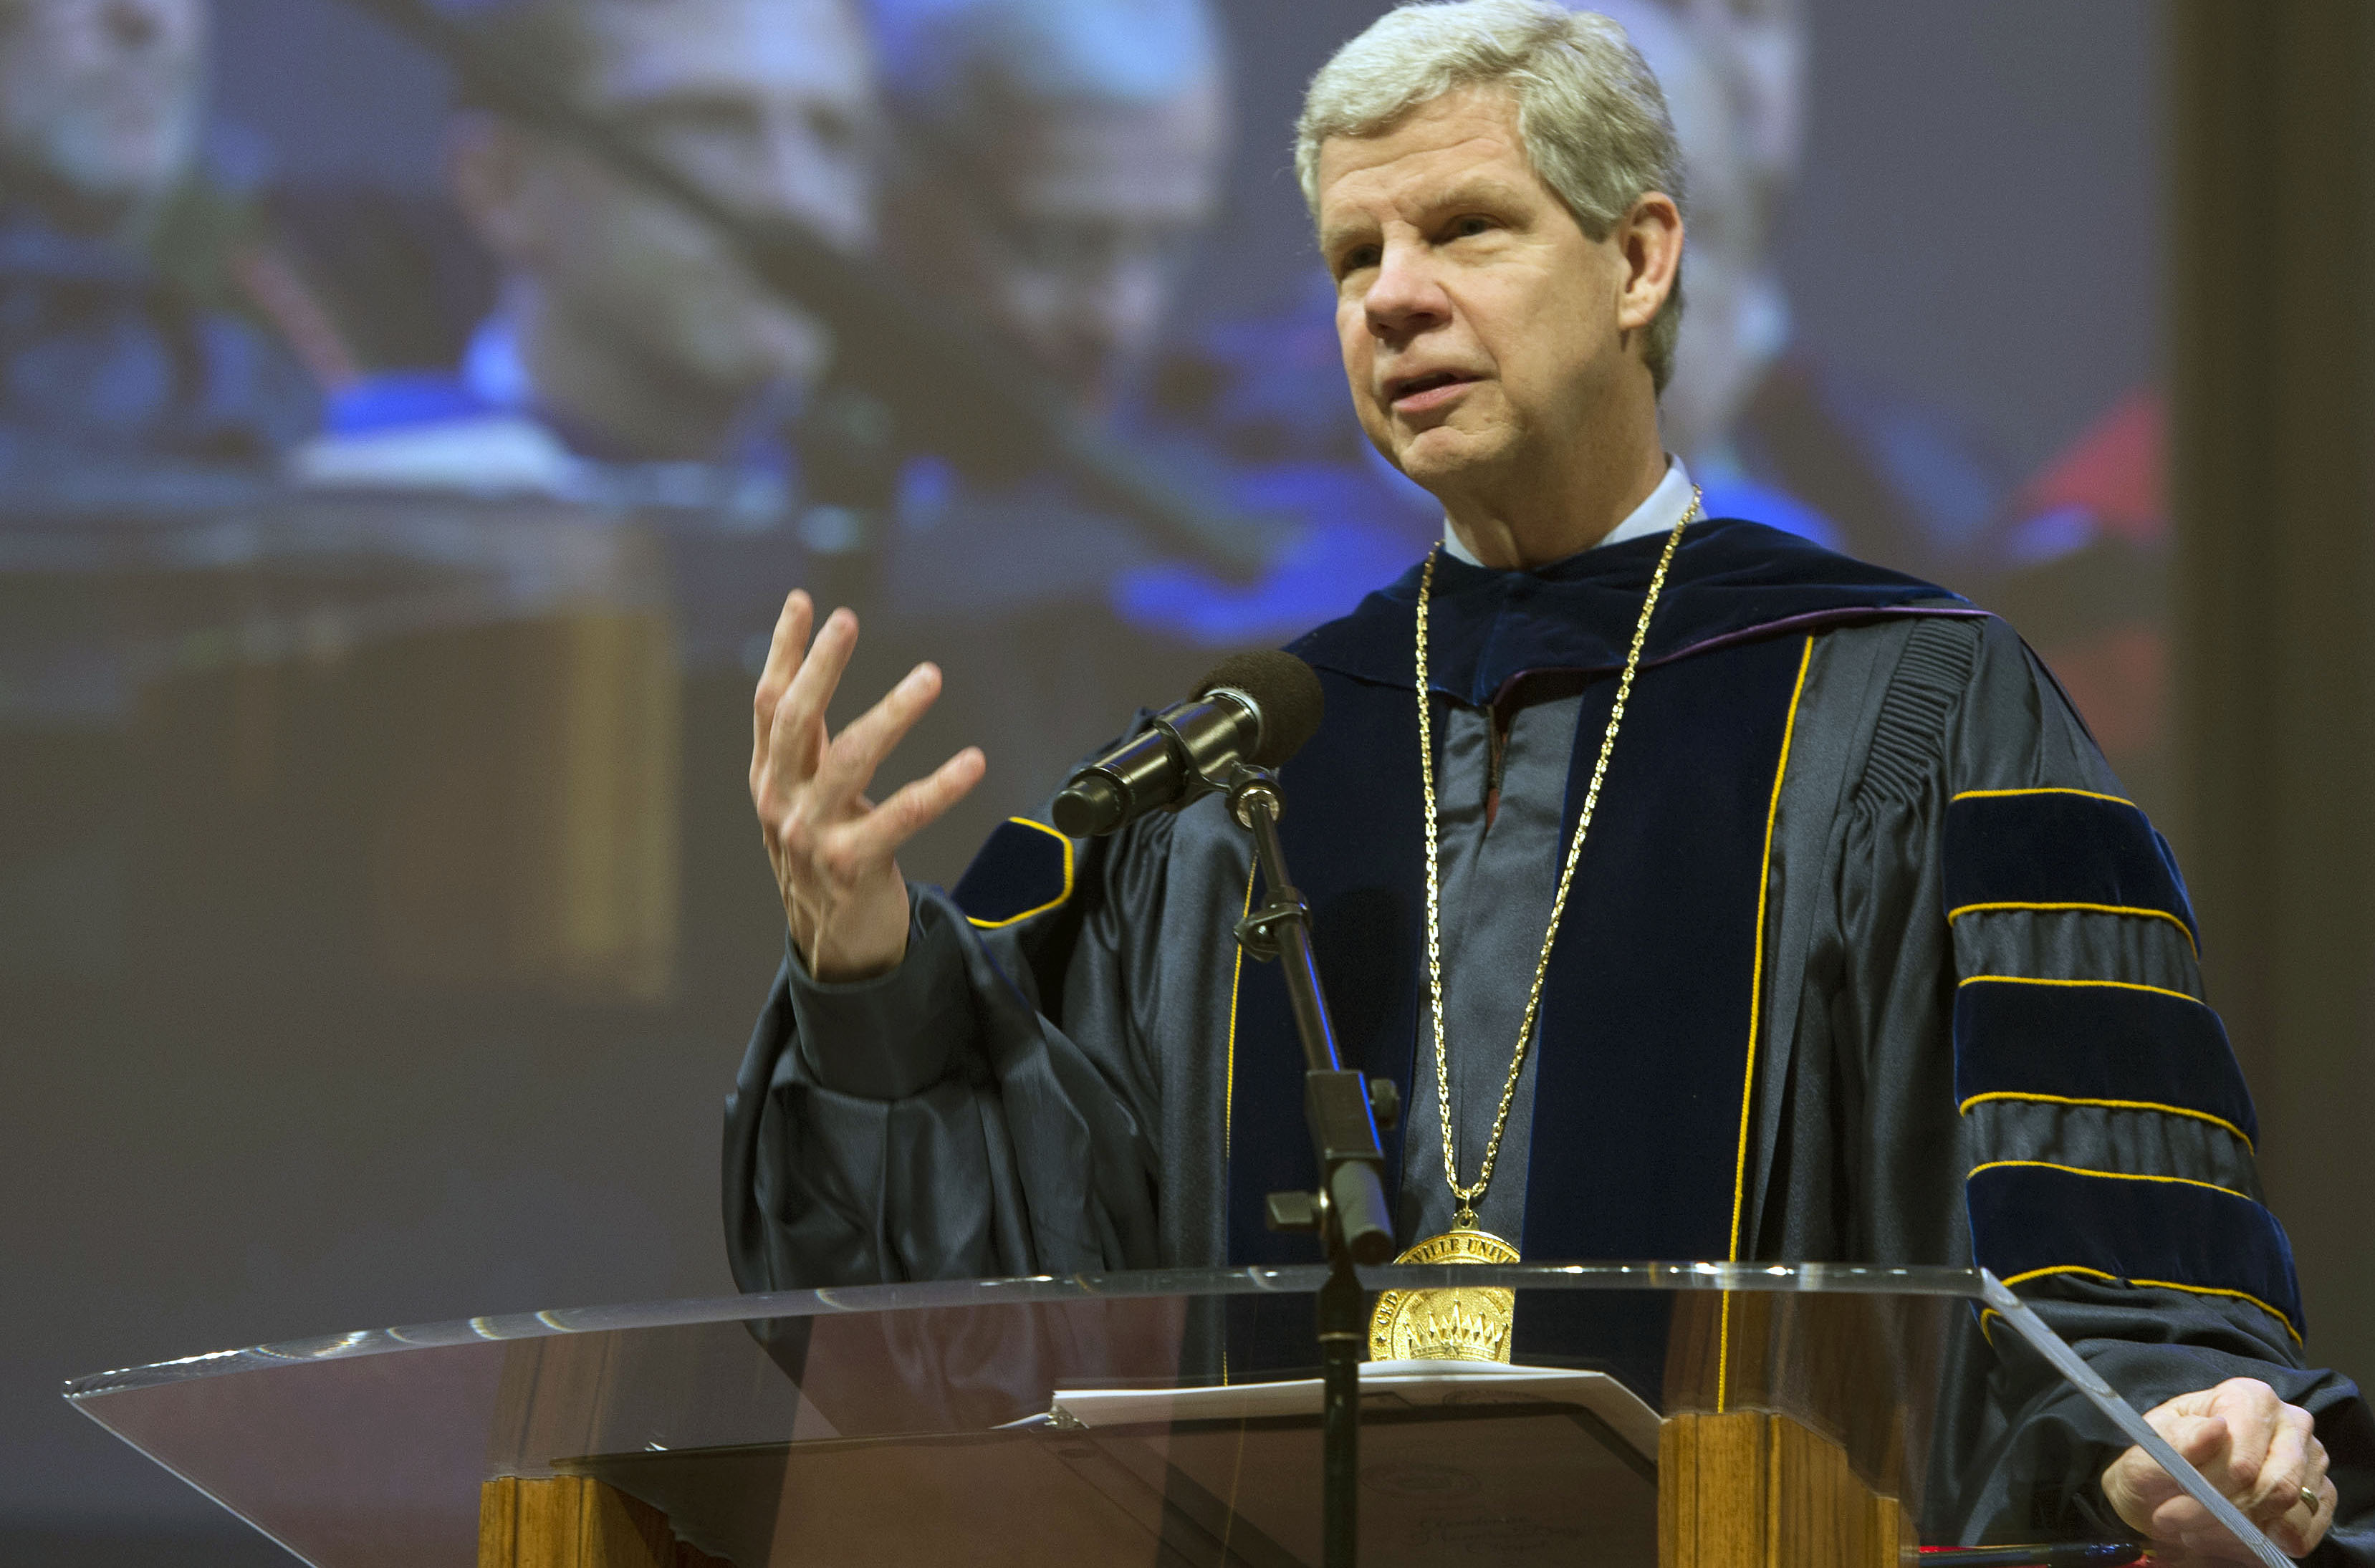 Dr. William E. Brown will speak to the class of 2013 at his last commencement as president. Photo credit: Scott L. Huck/Cedarville University